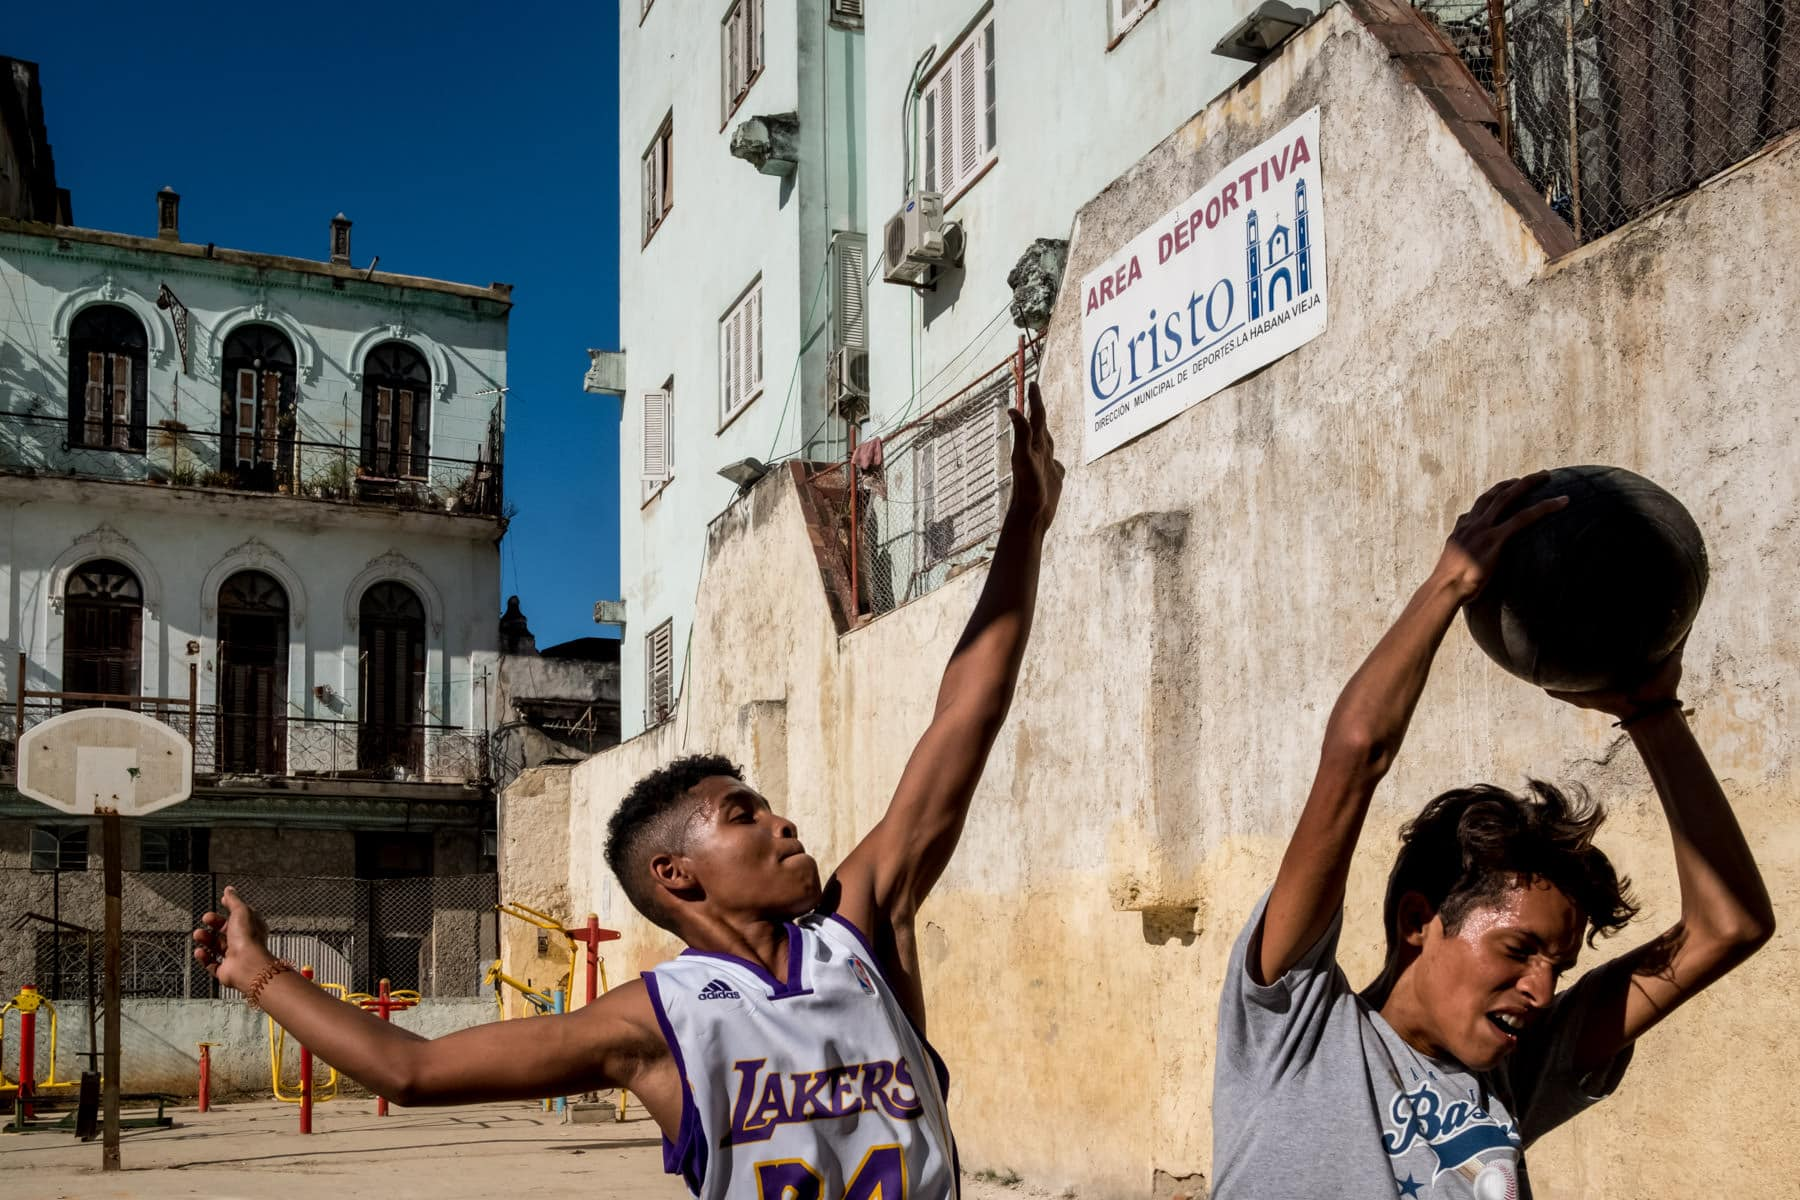 Young cuban men playing basket ball on the streets of Havana in the sun